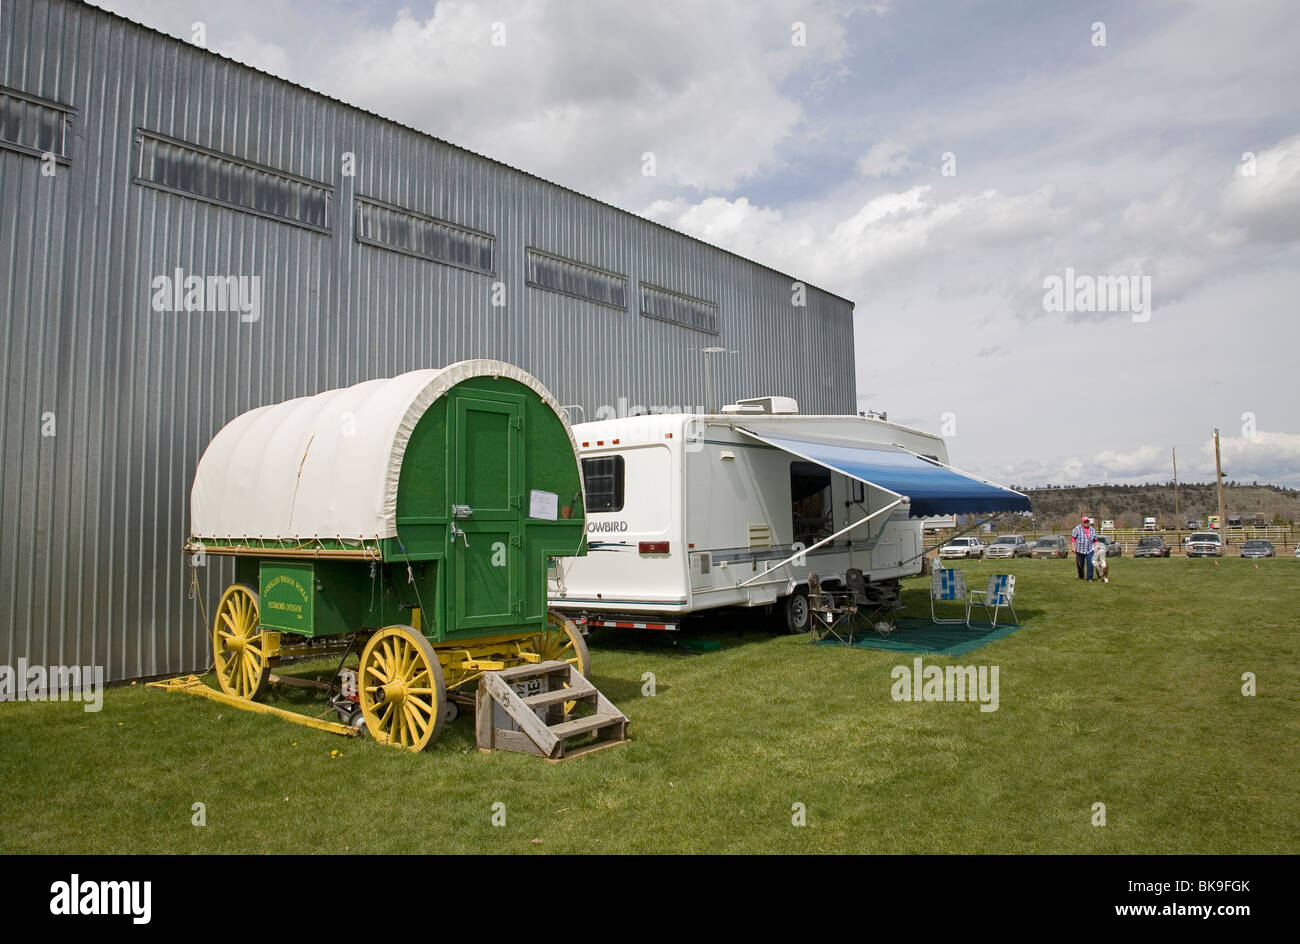 Rving then and now. A Basque sheep herder's wagon and a 5th wheel RV camper - Stock Image